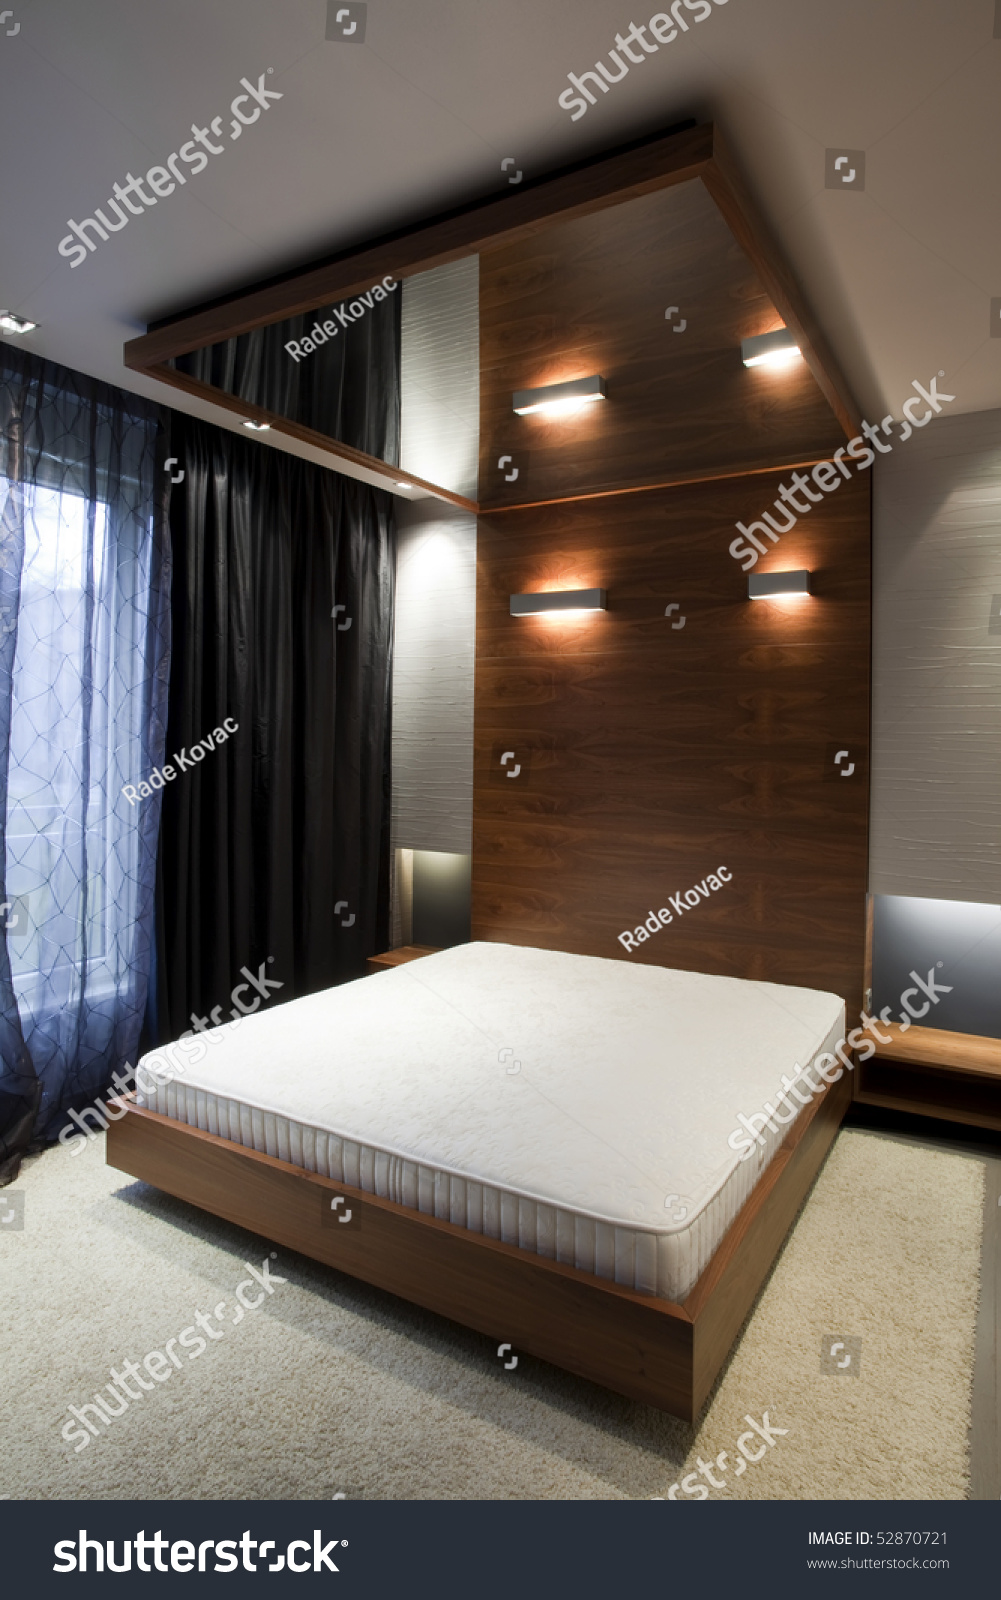 Bedroom With Mirror On The Ceiling Stock Photo 52870721 : Shutterstock